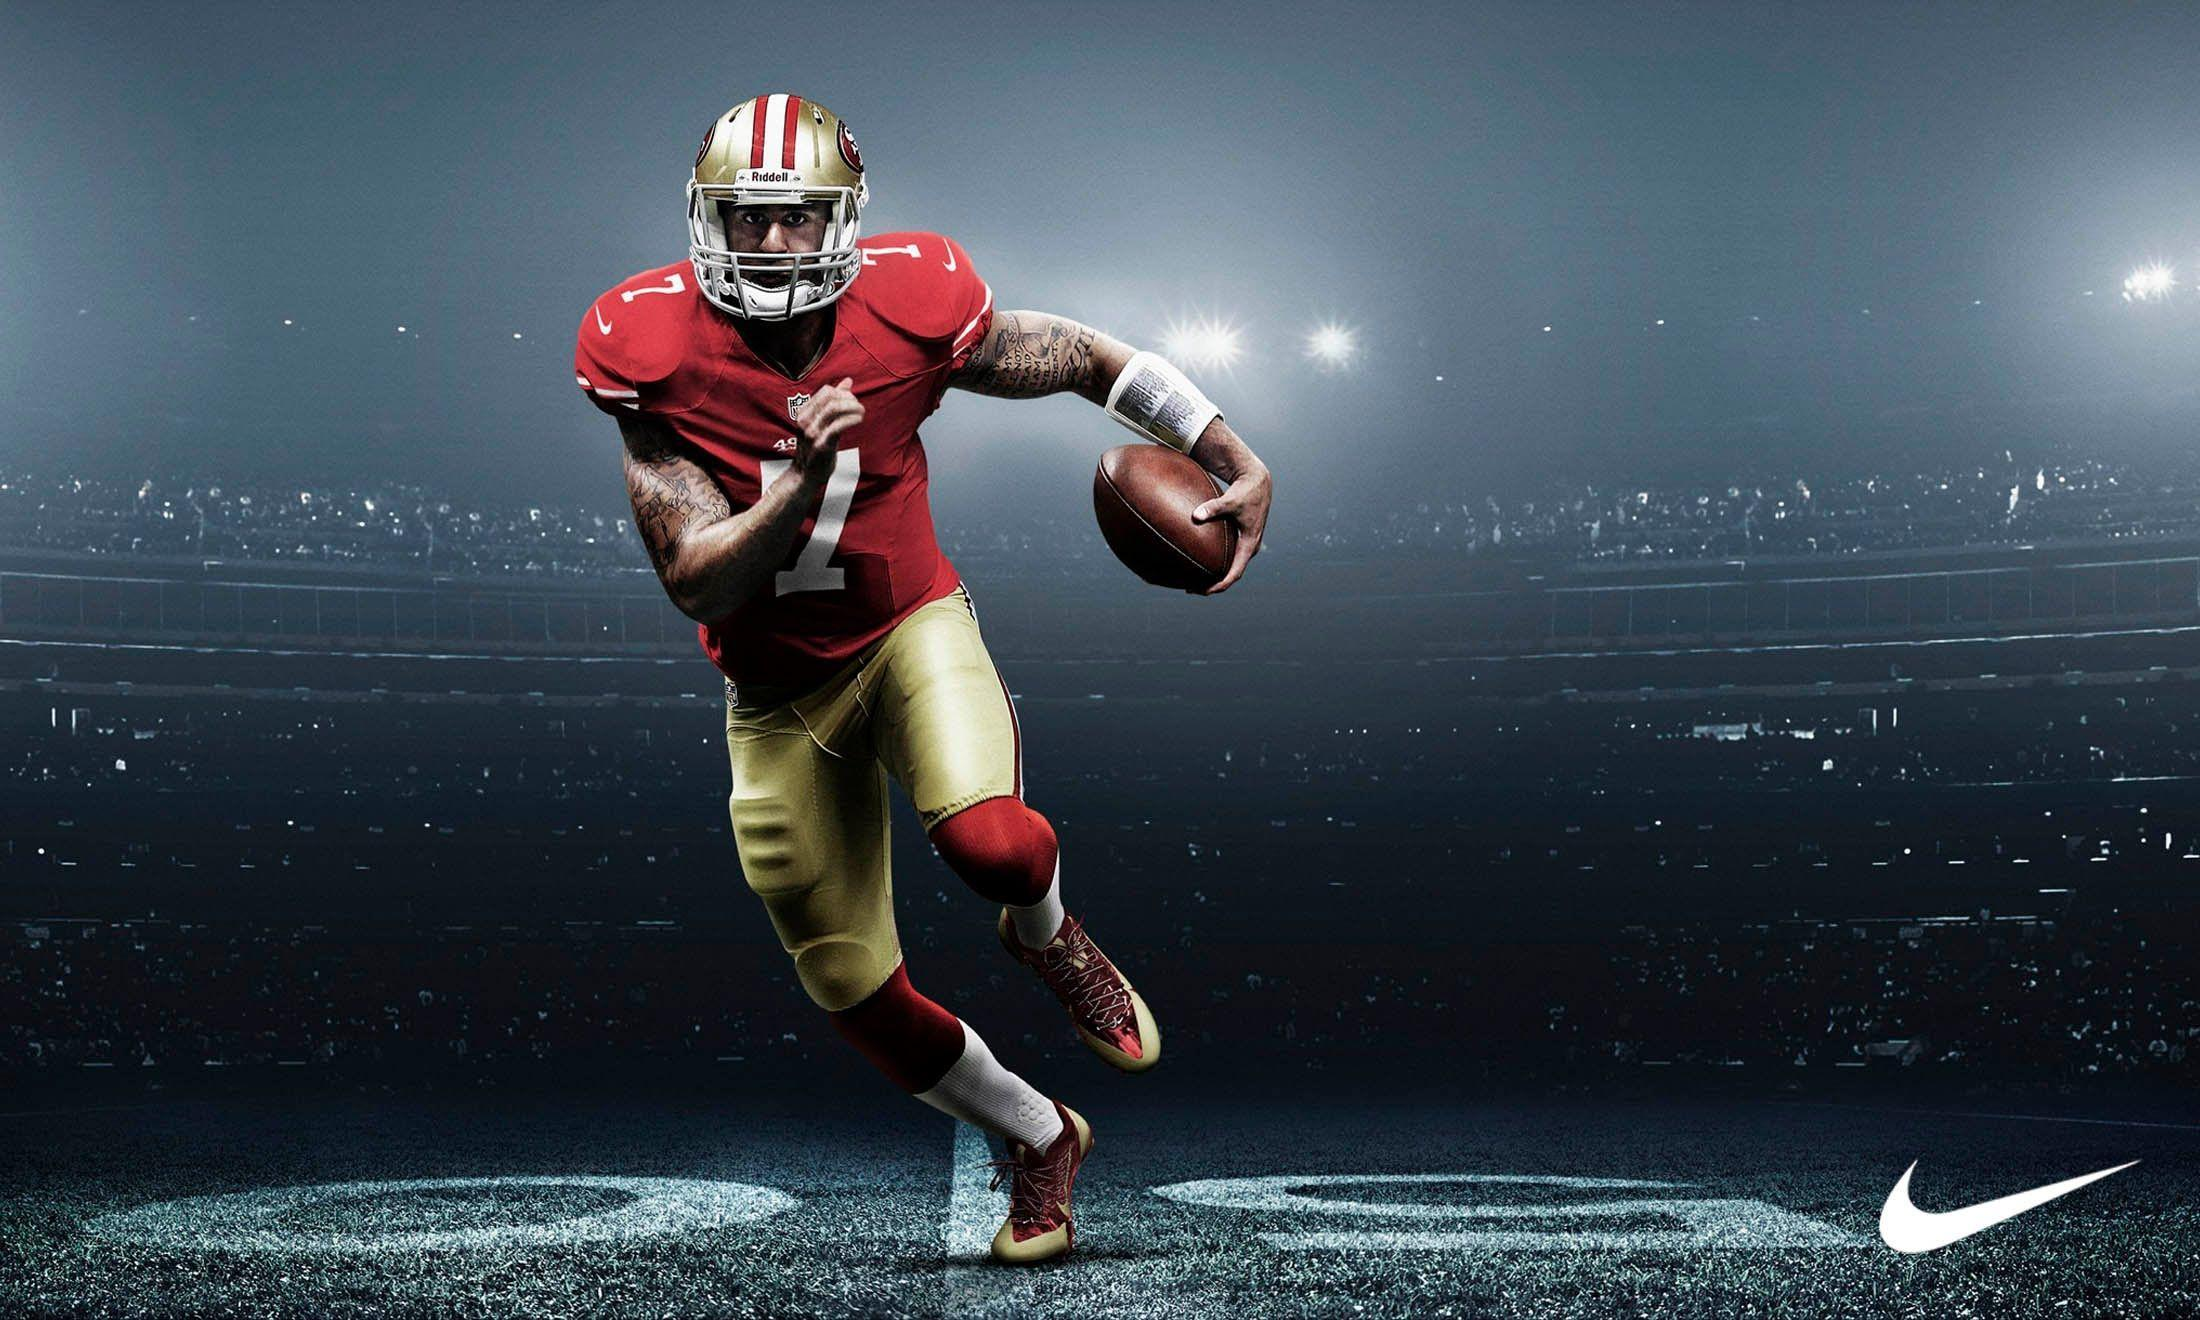 HD San Francisco 49ers Wallpapers - Page 2 of 3 - wallpaper.wiki